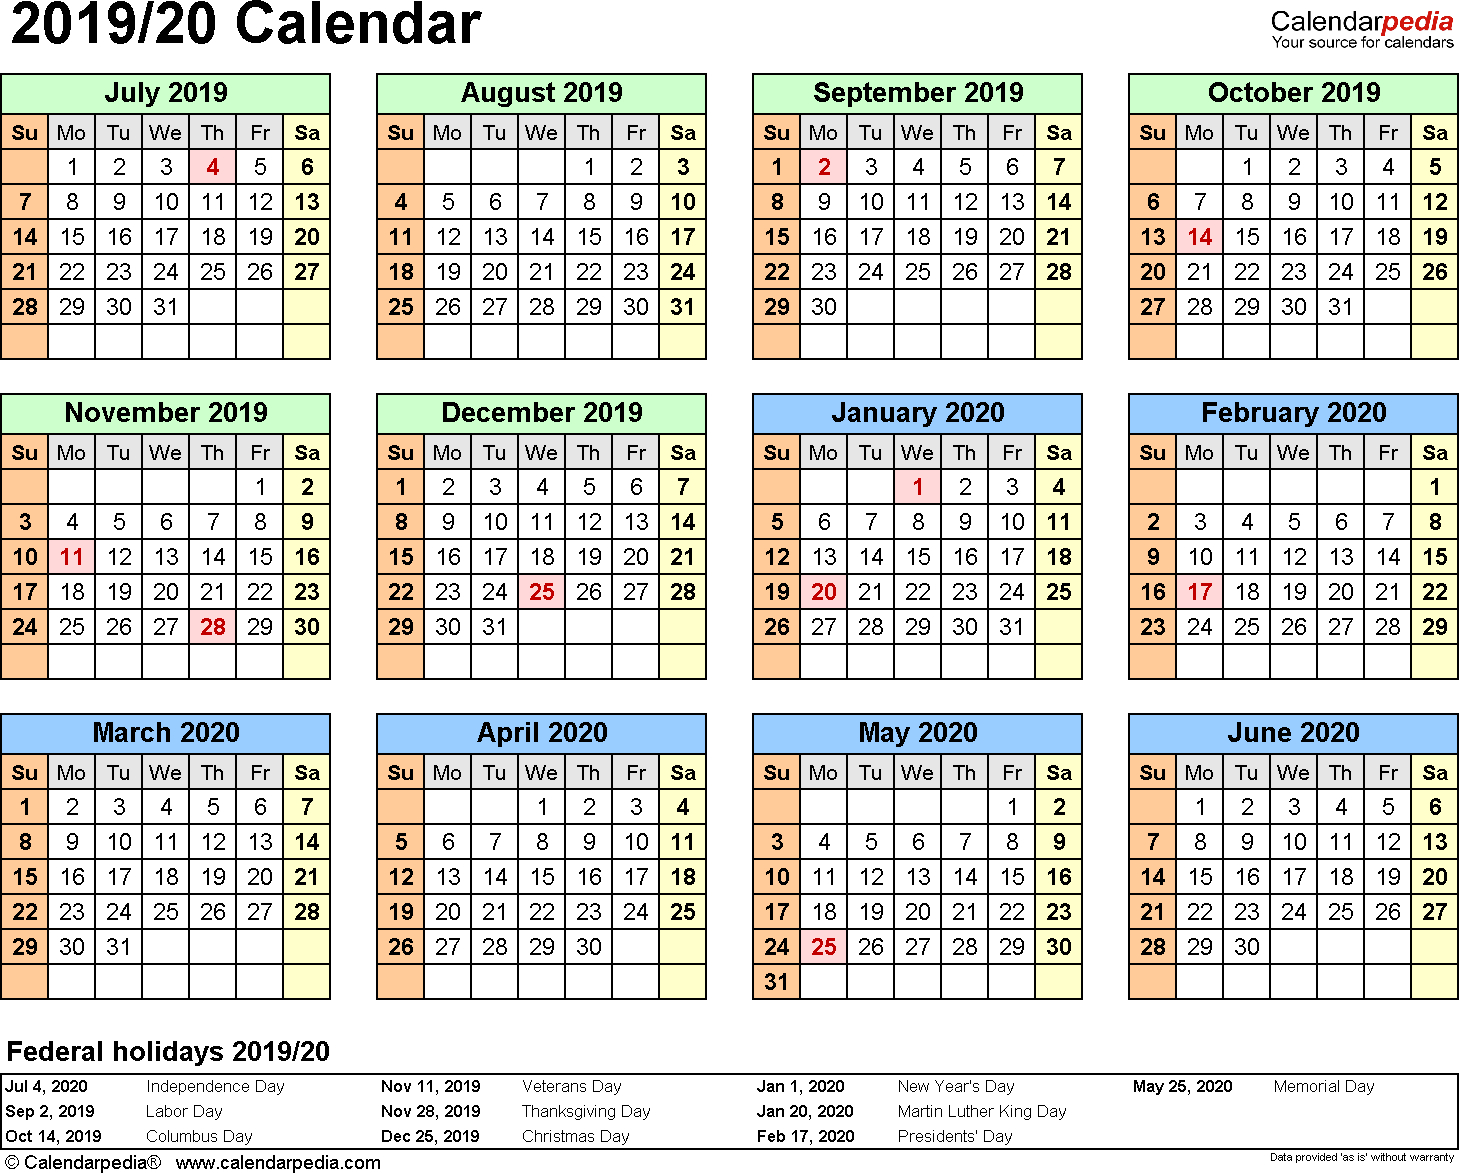 Split Year Calendar 2019/20 (July To June) - Word Templates intended for Printable Yearly Calendar June 2019-2020